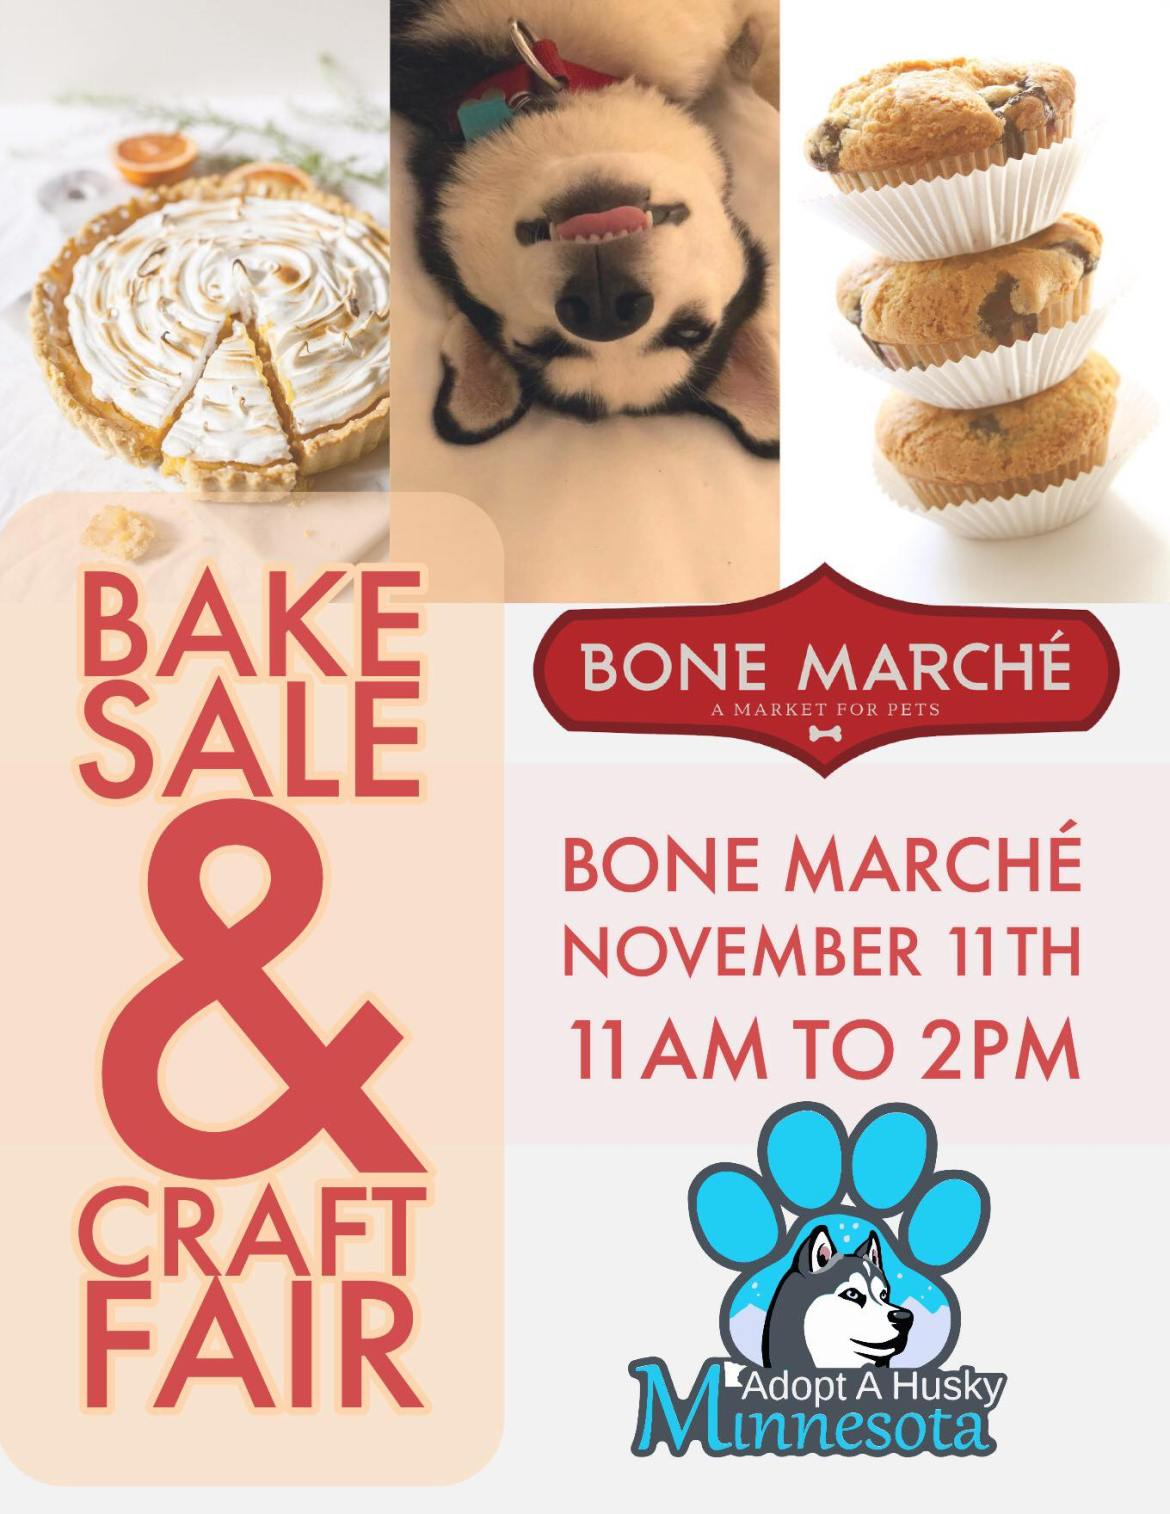 Bake sale and Craft Fair at Bone Marché